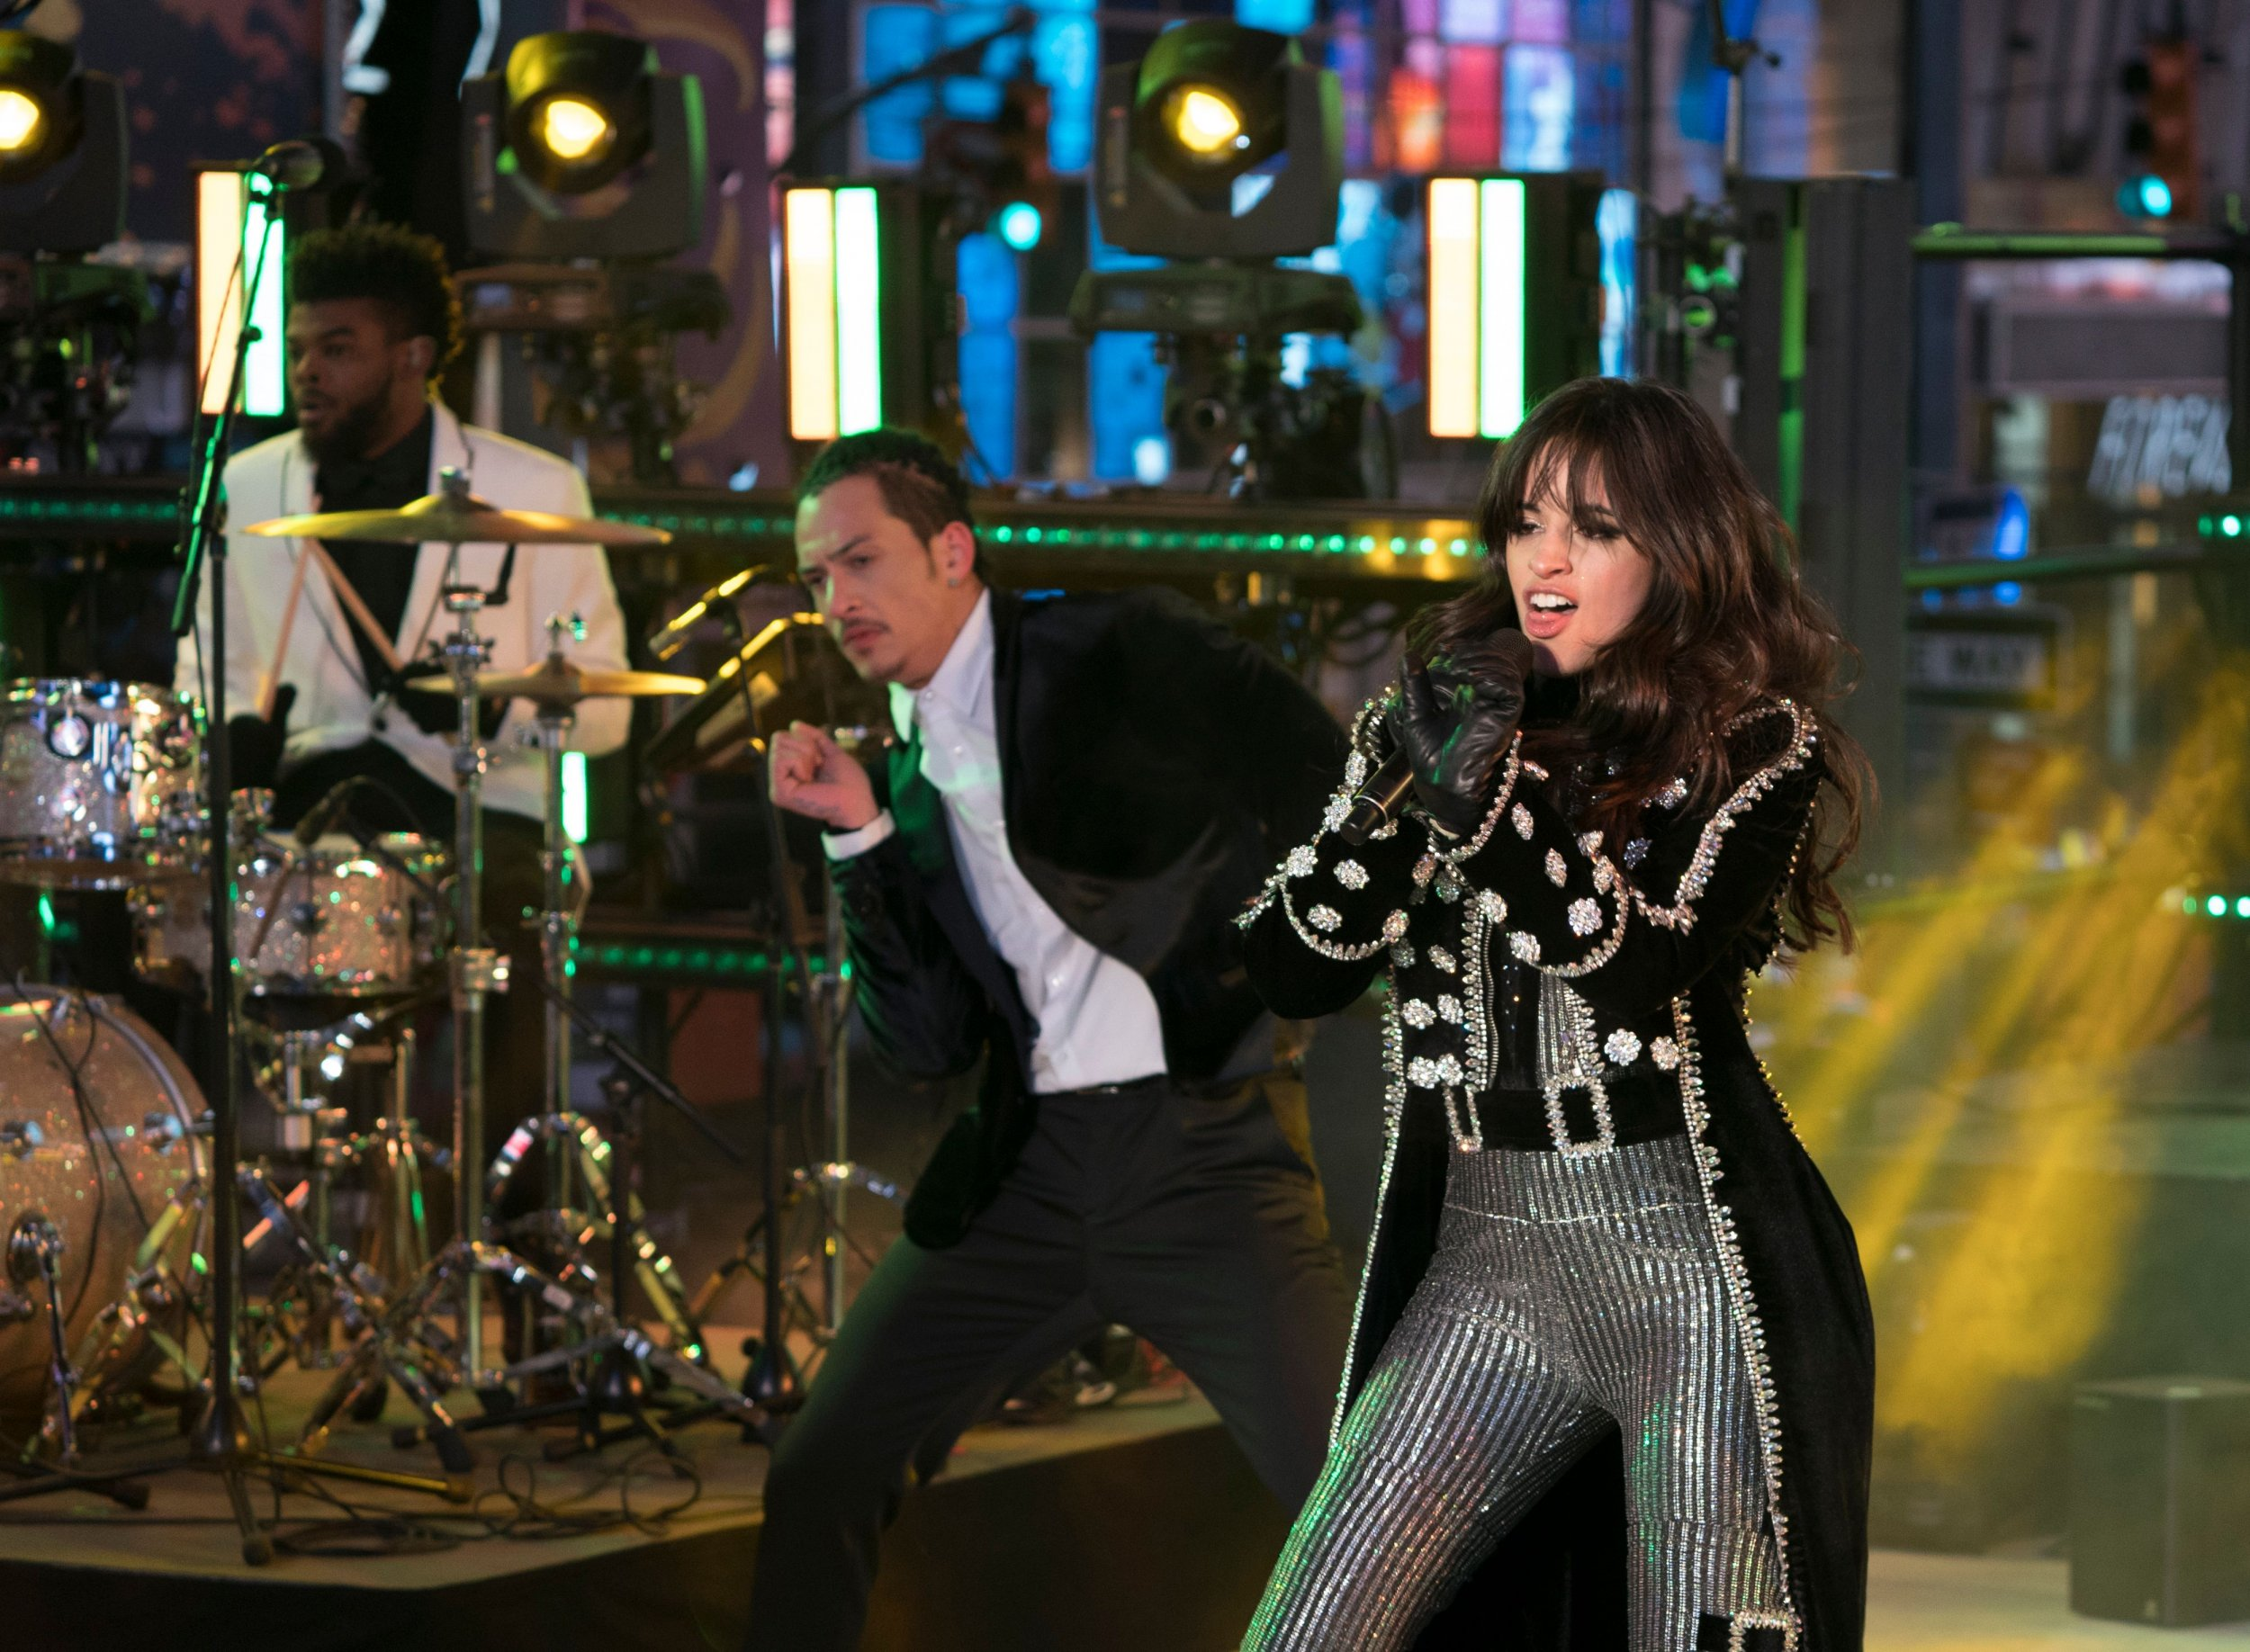 New Years Eve Times Square 2020 Performers New Year's Eve Performers, Schedule 2018: Times Square, Hollywood